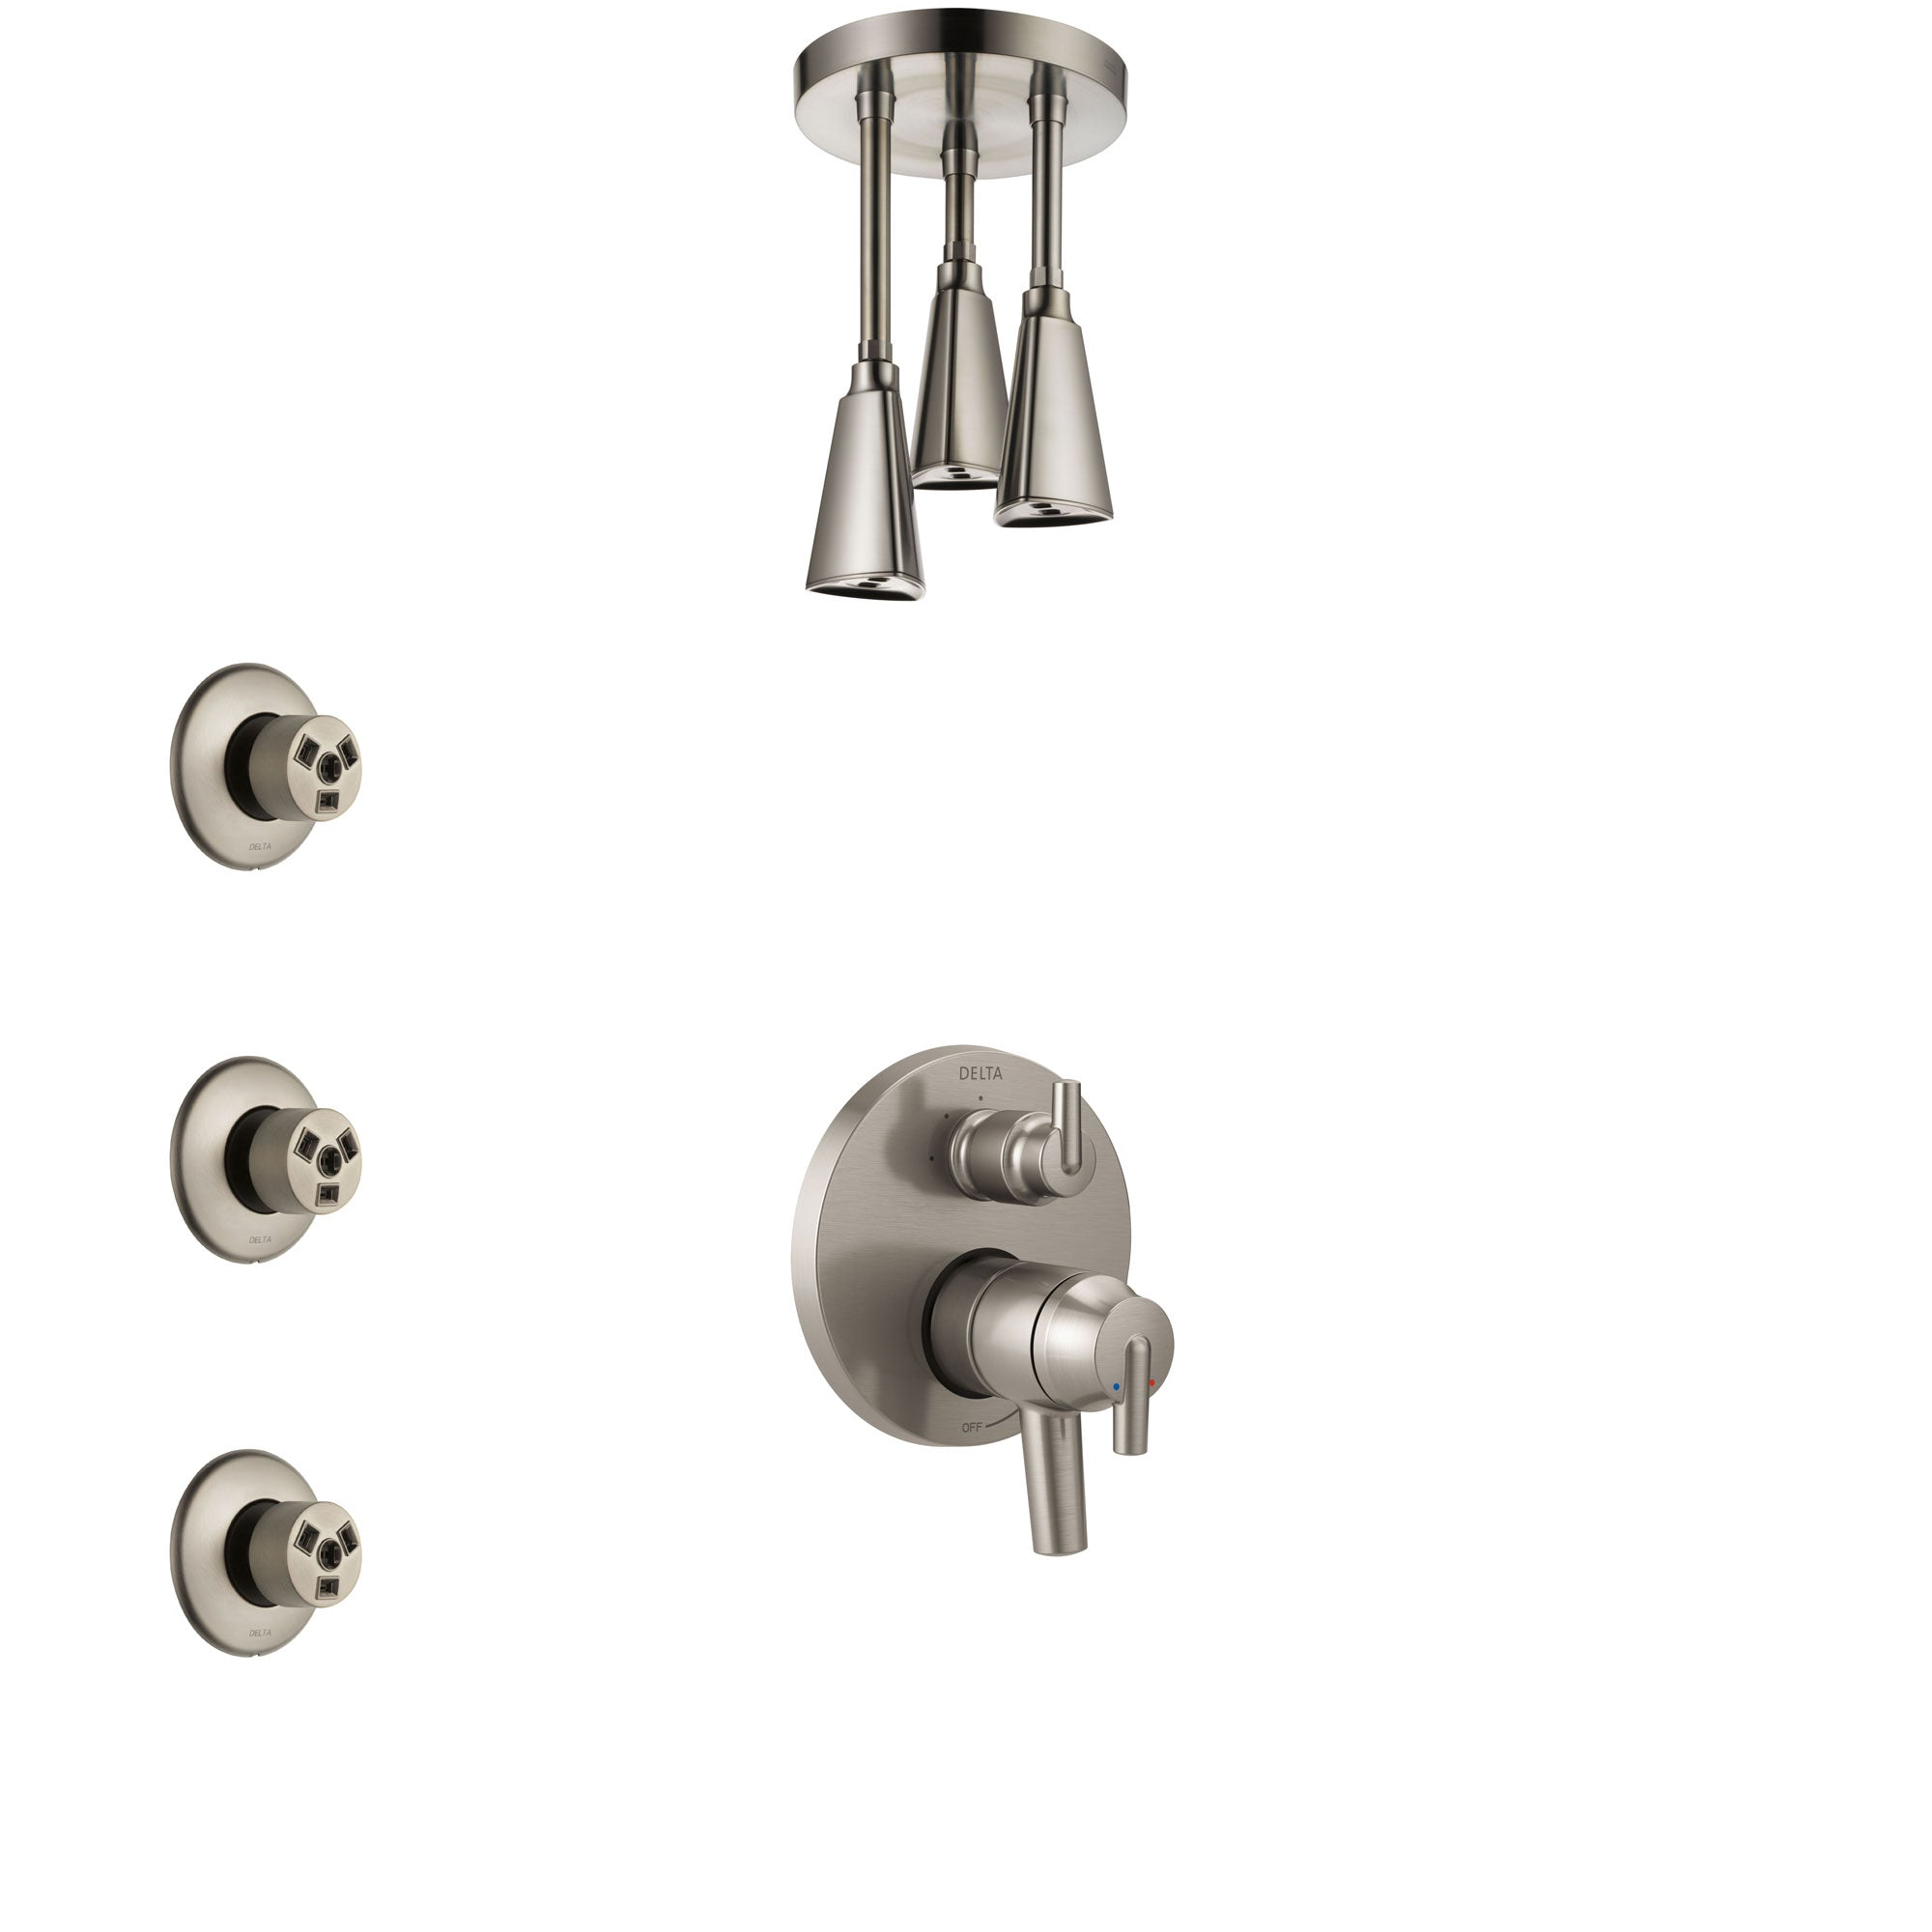 Delta Trinsic Dual Control Handle Stainless Steel Finish Shower System, Integrated Diverter, Ceiling Mount Showerhead, and 3 Body Sprays SS27859SS2